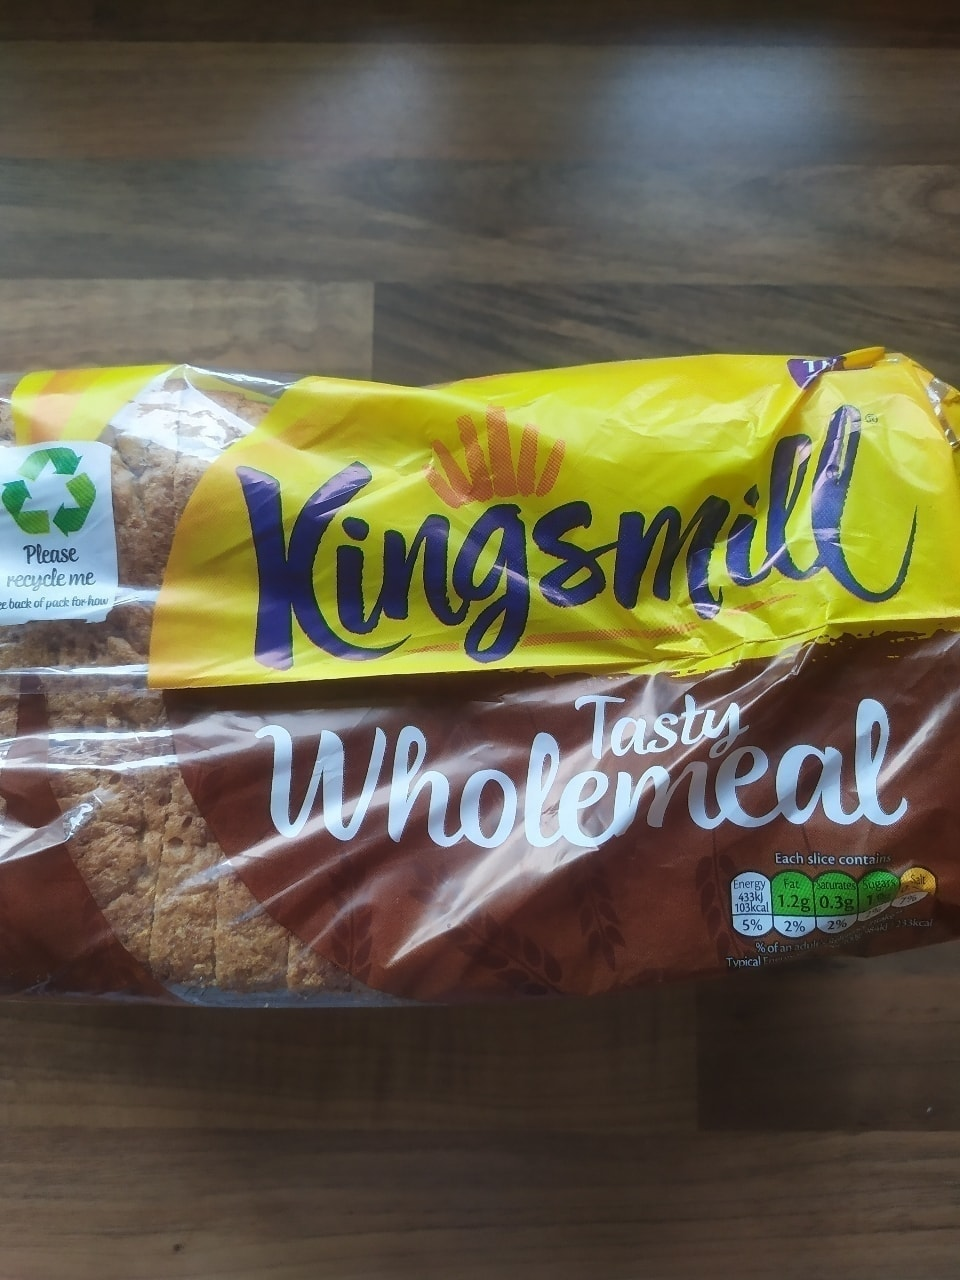 Thick Sliced Wholemeal kingsmill